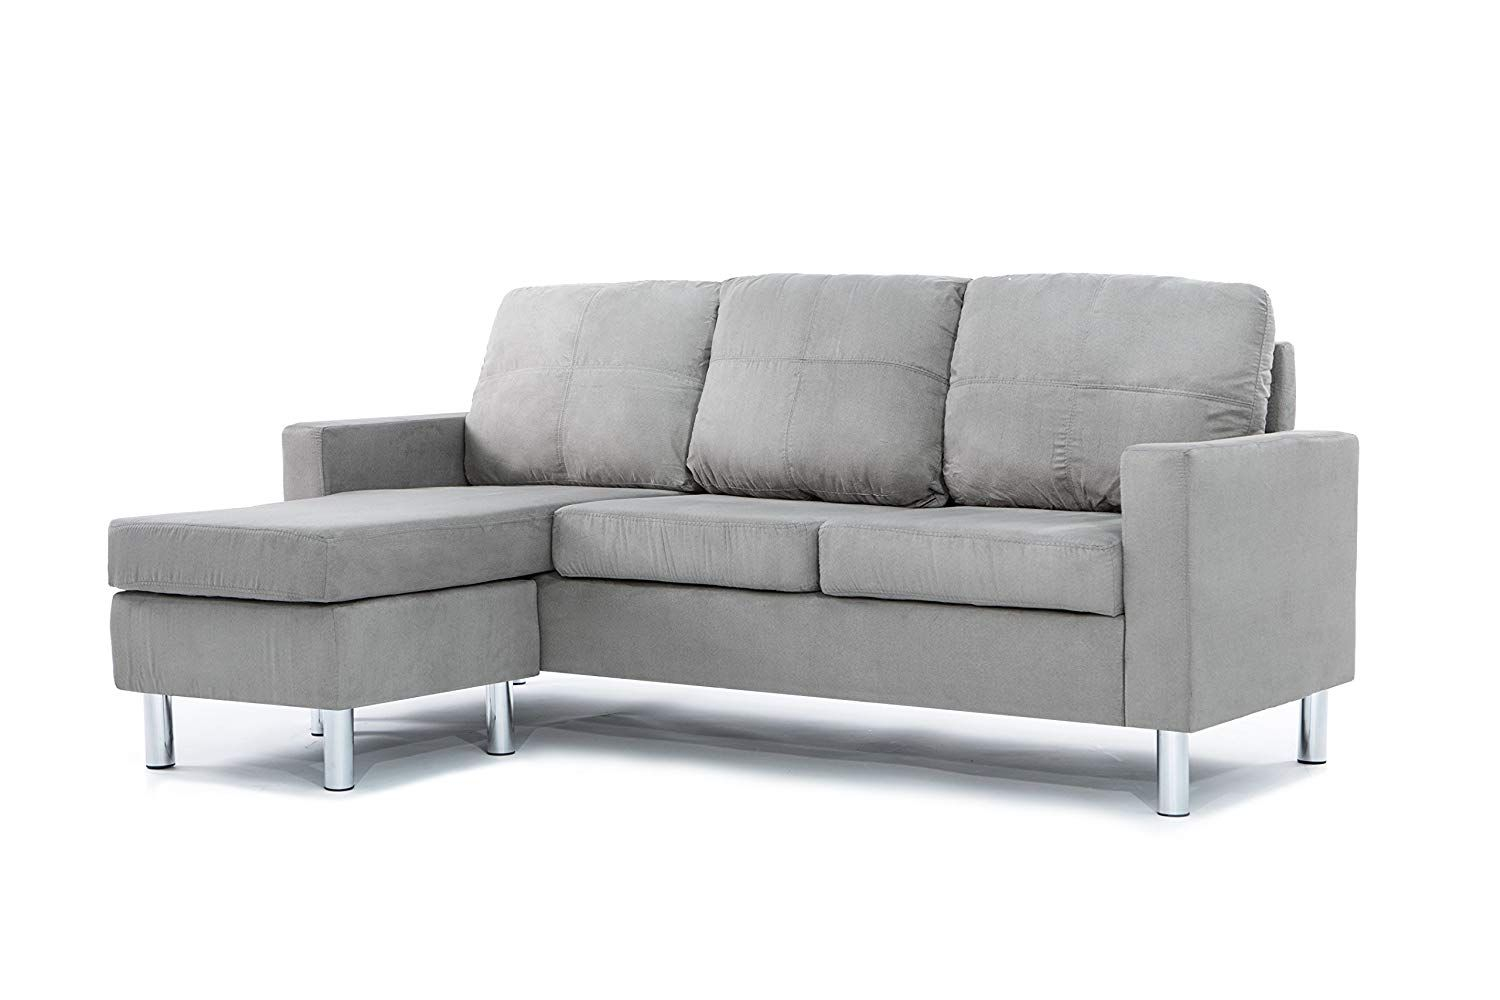 Sectional sofa   Furniture collection   Small sectional sofa ...